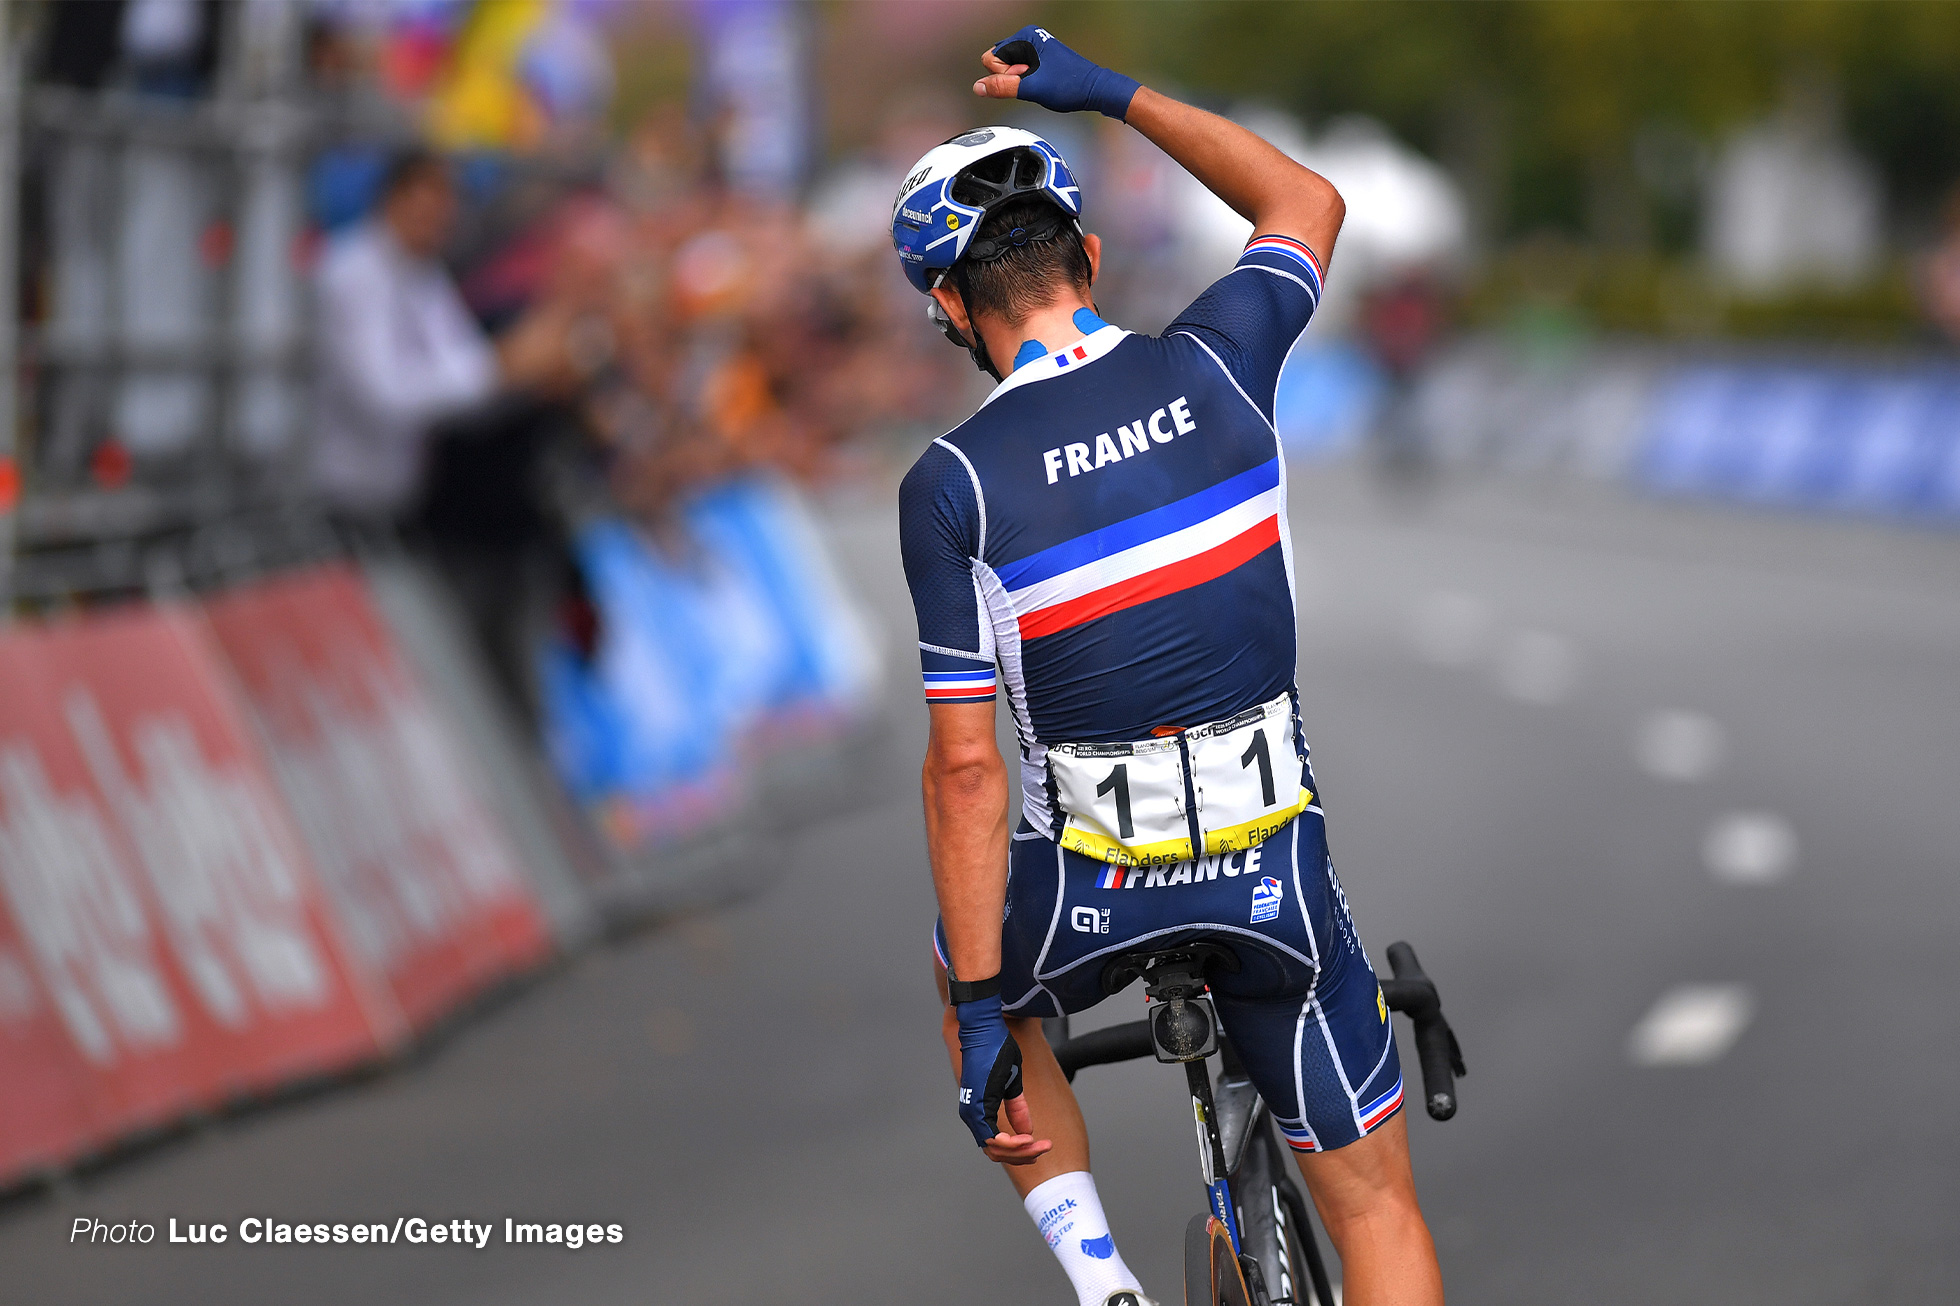 LEUVEN, BELGIUM - SEPTEMBER 26: Julian Alaphilippe of France celebrates at finish line as race winner during the 94th UCI Road World Championships 2021 - Men Elite Road Race a 268,3km race from Antwerp to Leuven / #flanders2021 / on September 26, 2021 in Leuven, Belgium. (Photo by Luc Claessen/Getty Images)